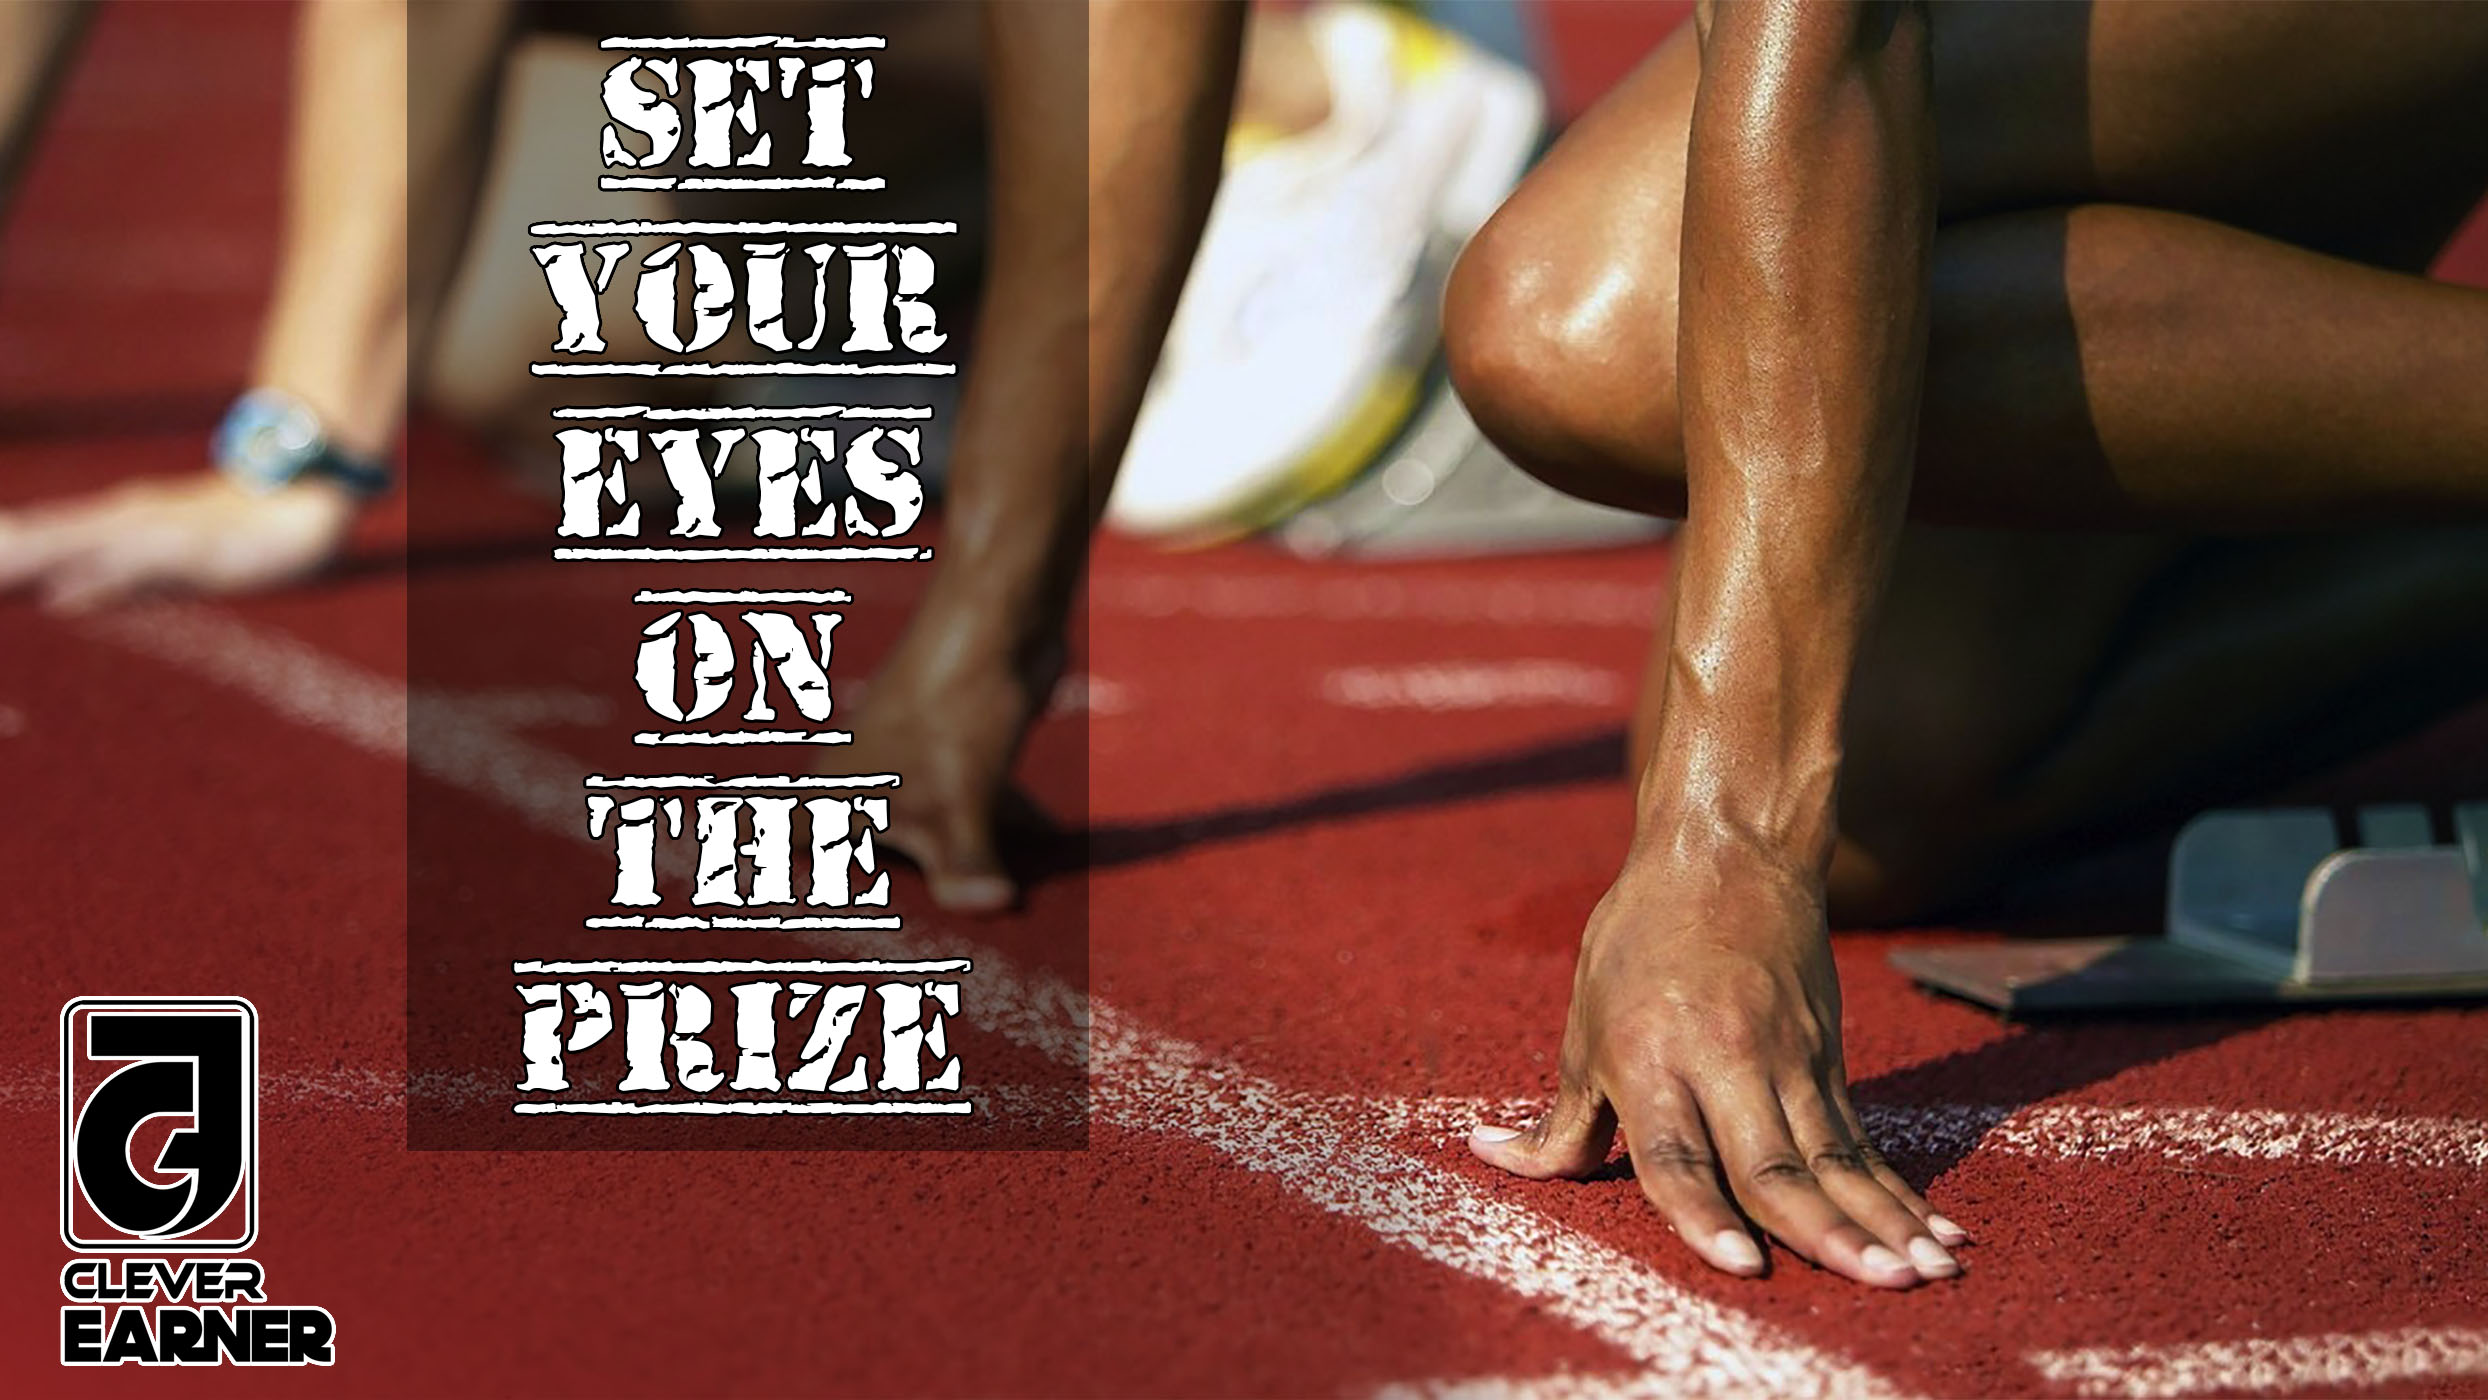 Set your eyes on the prize